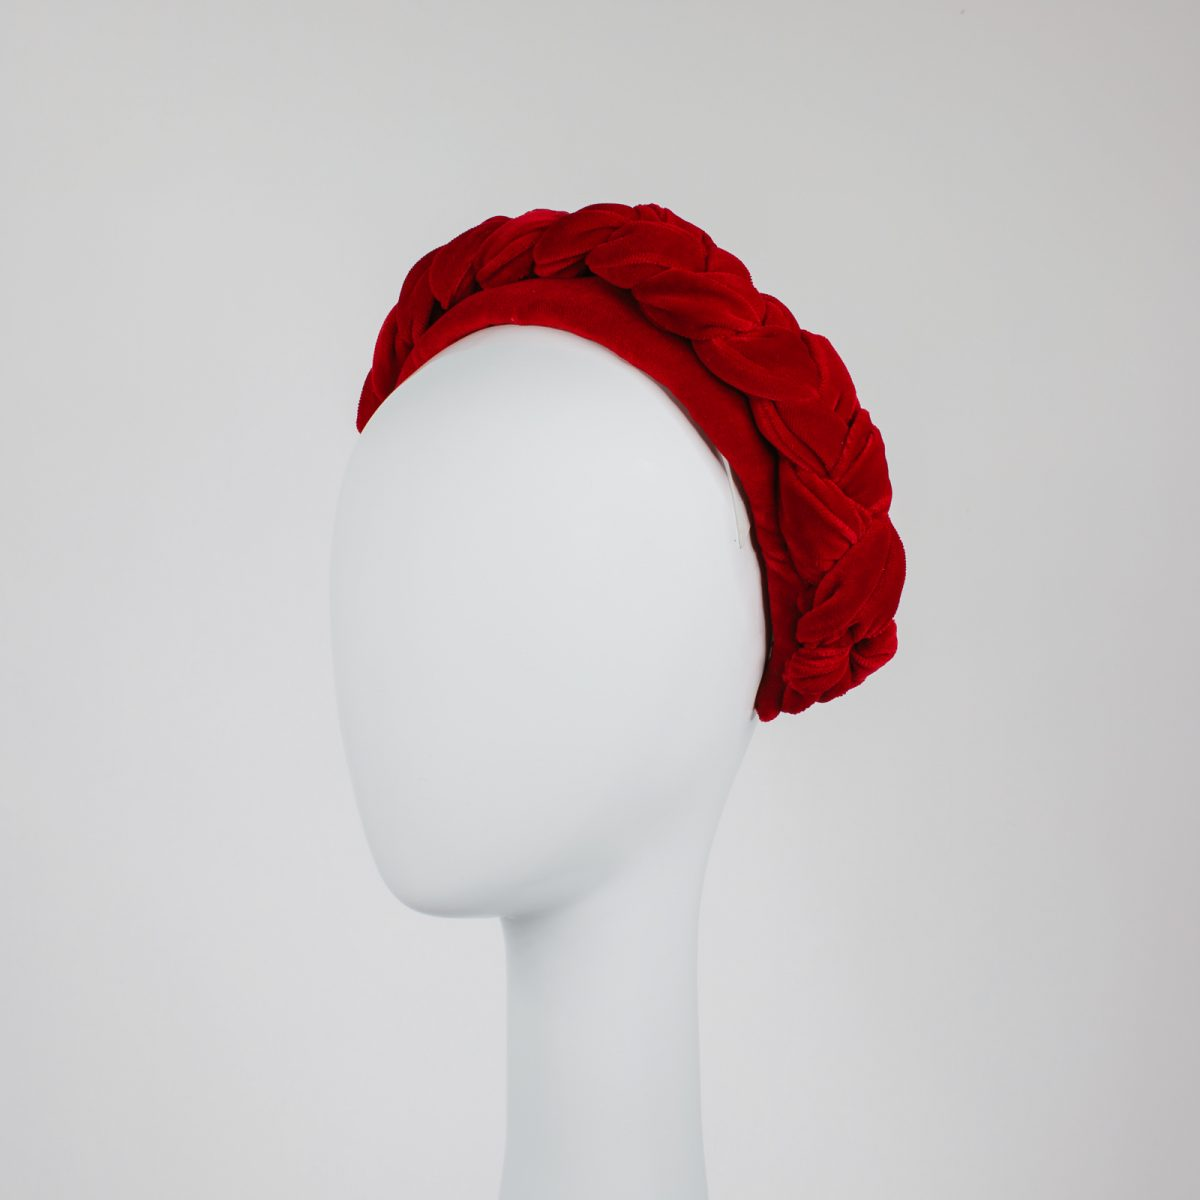 millinery from melbourne - racewear designs - red headband on angle